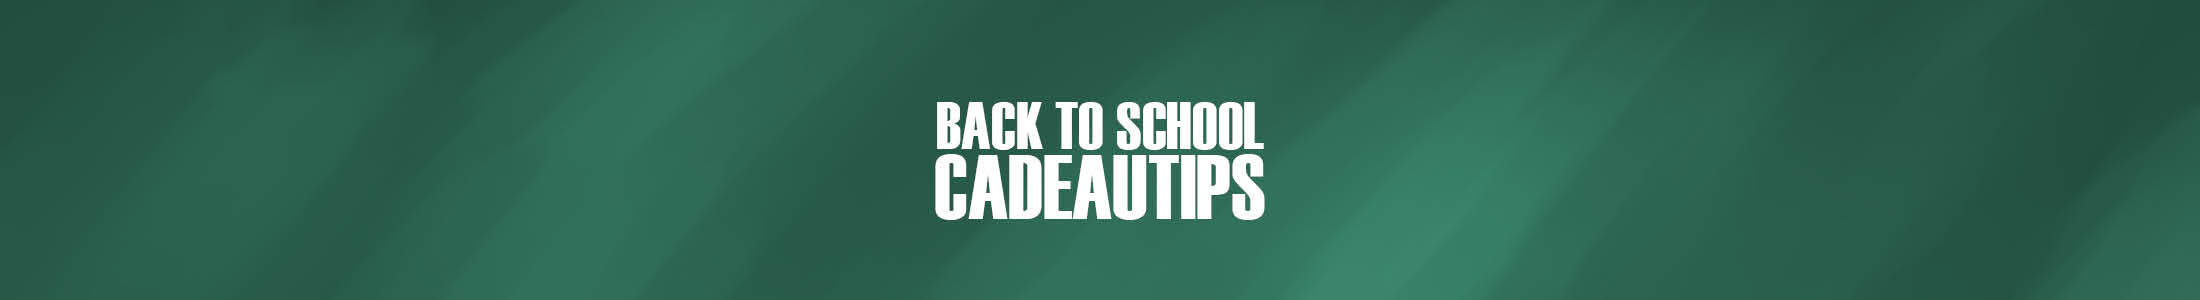 Cadeautips - Back to School